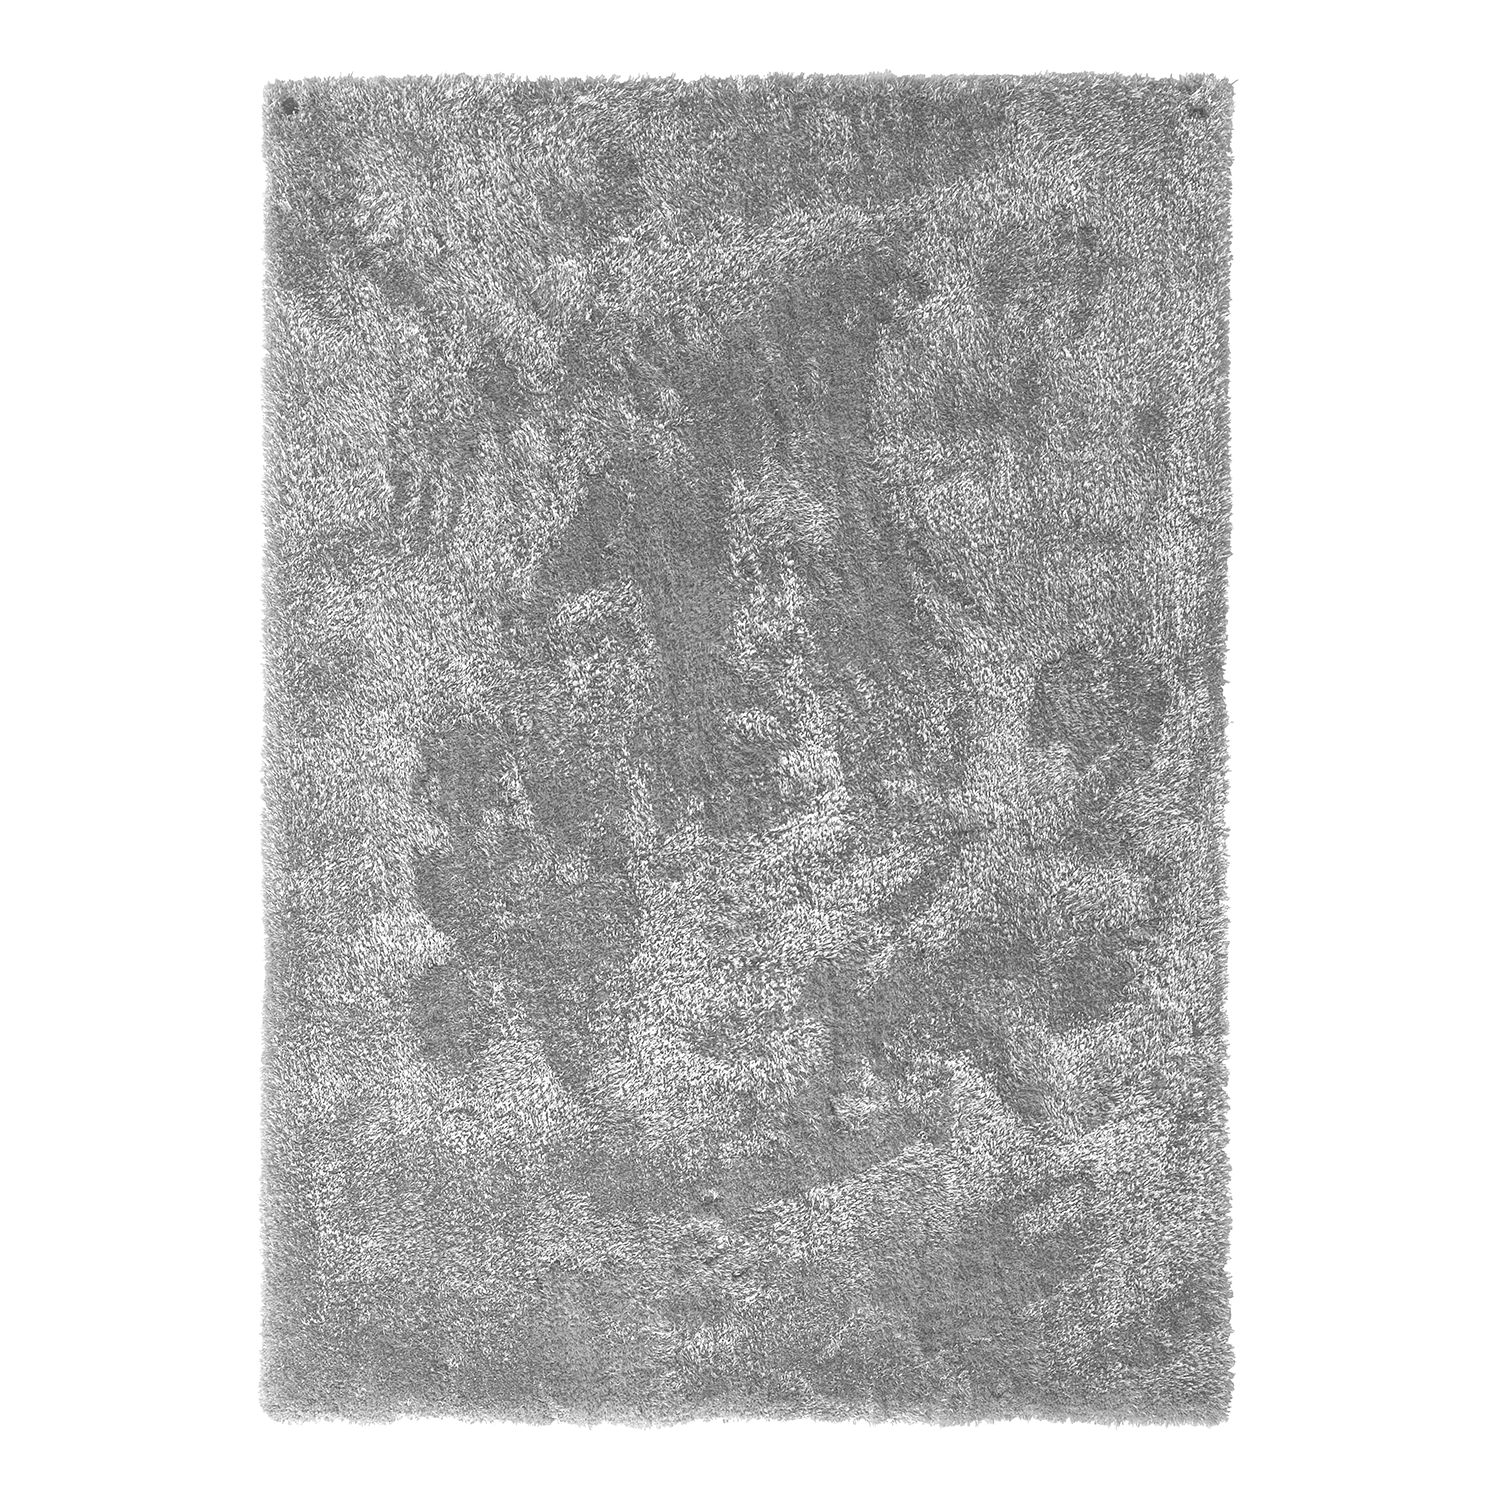 Home 24 - Tapis soft square - gris - 160 x 230 cm, tom tailor